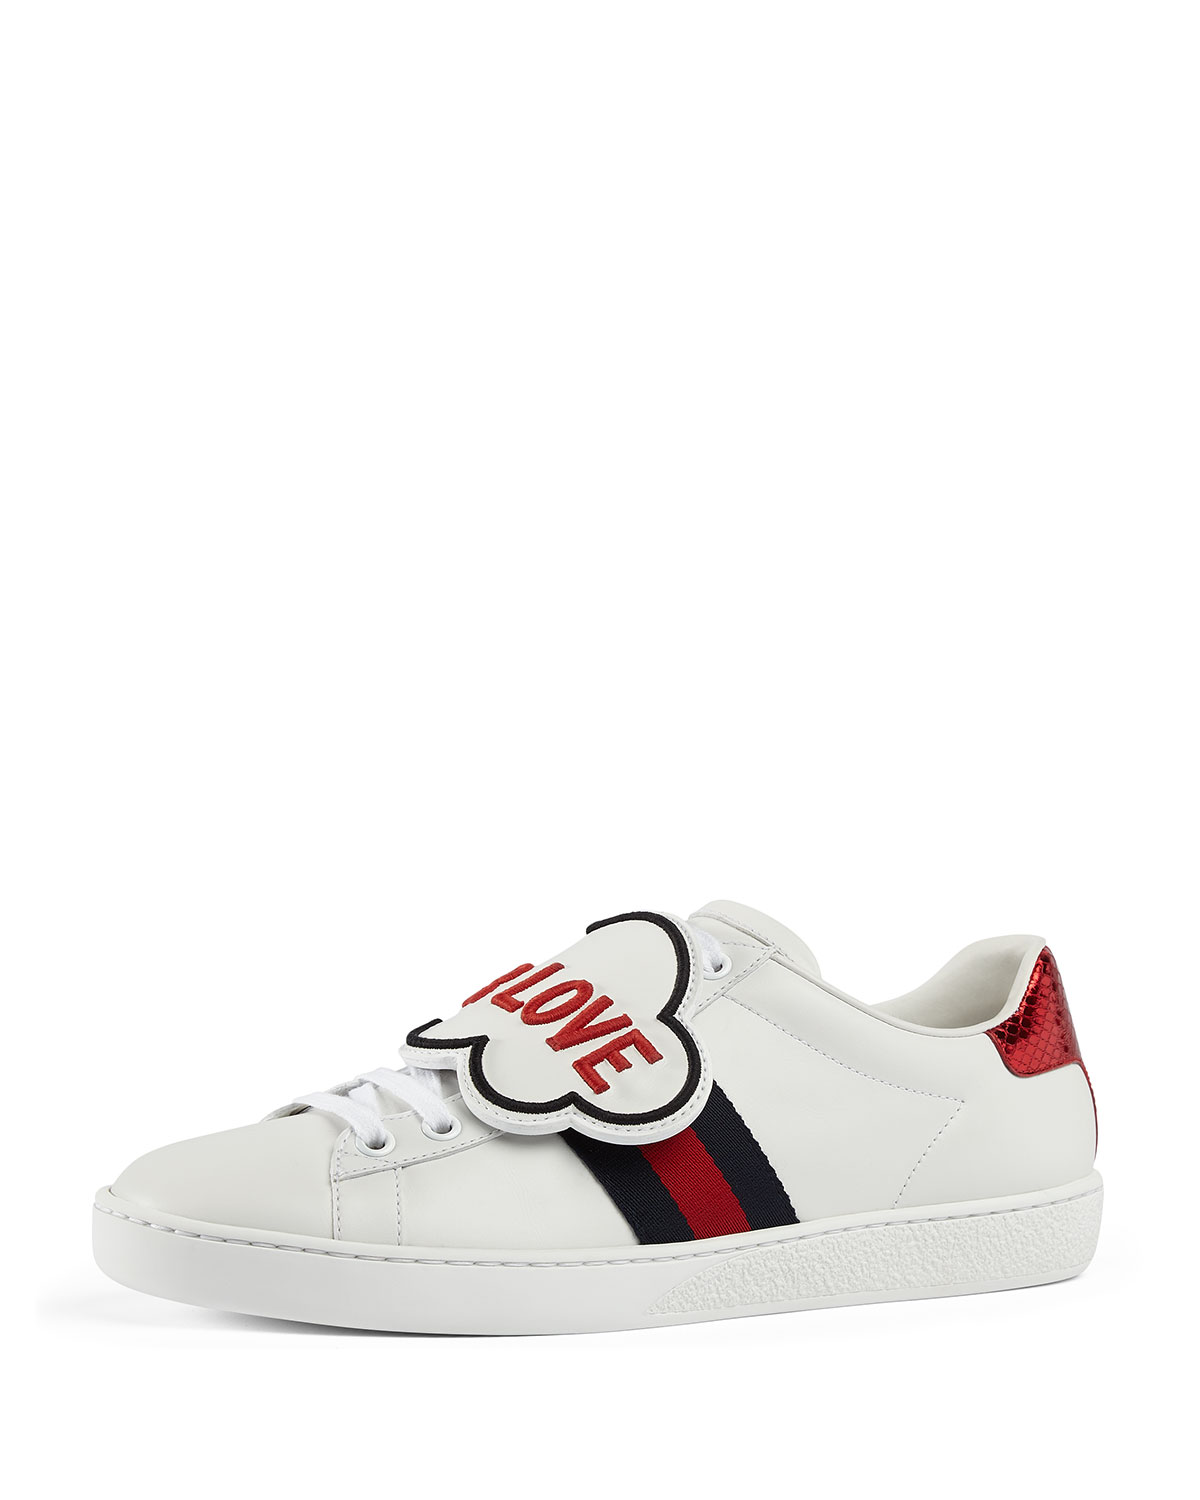 6a8461e17 Gucci Blind For Love New Ace Sneakers, White/Red | Neiman Marcus